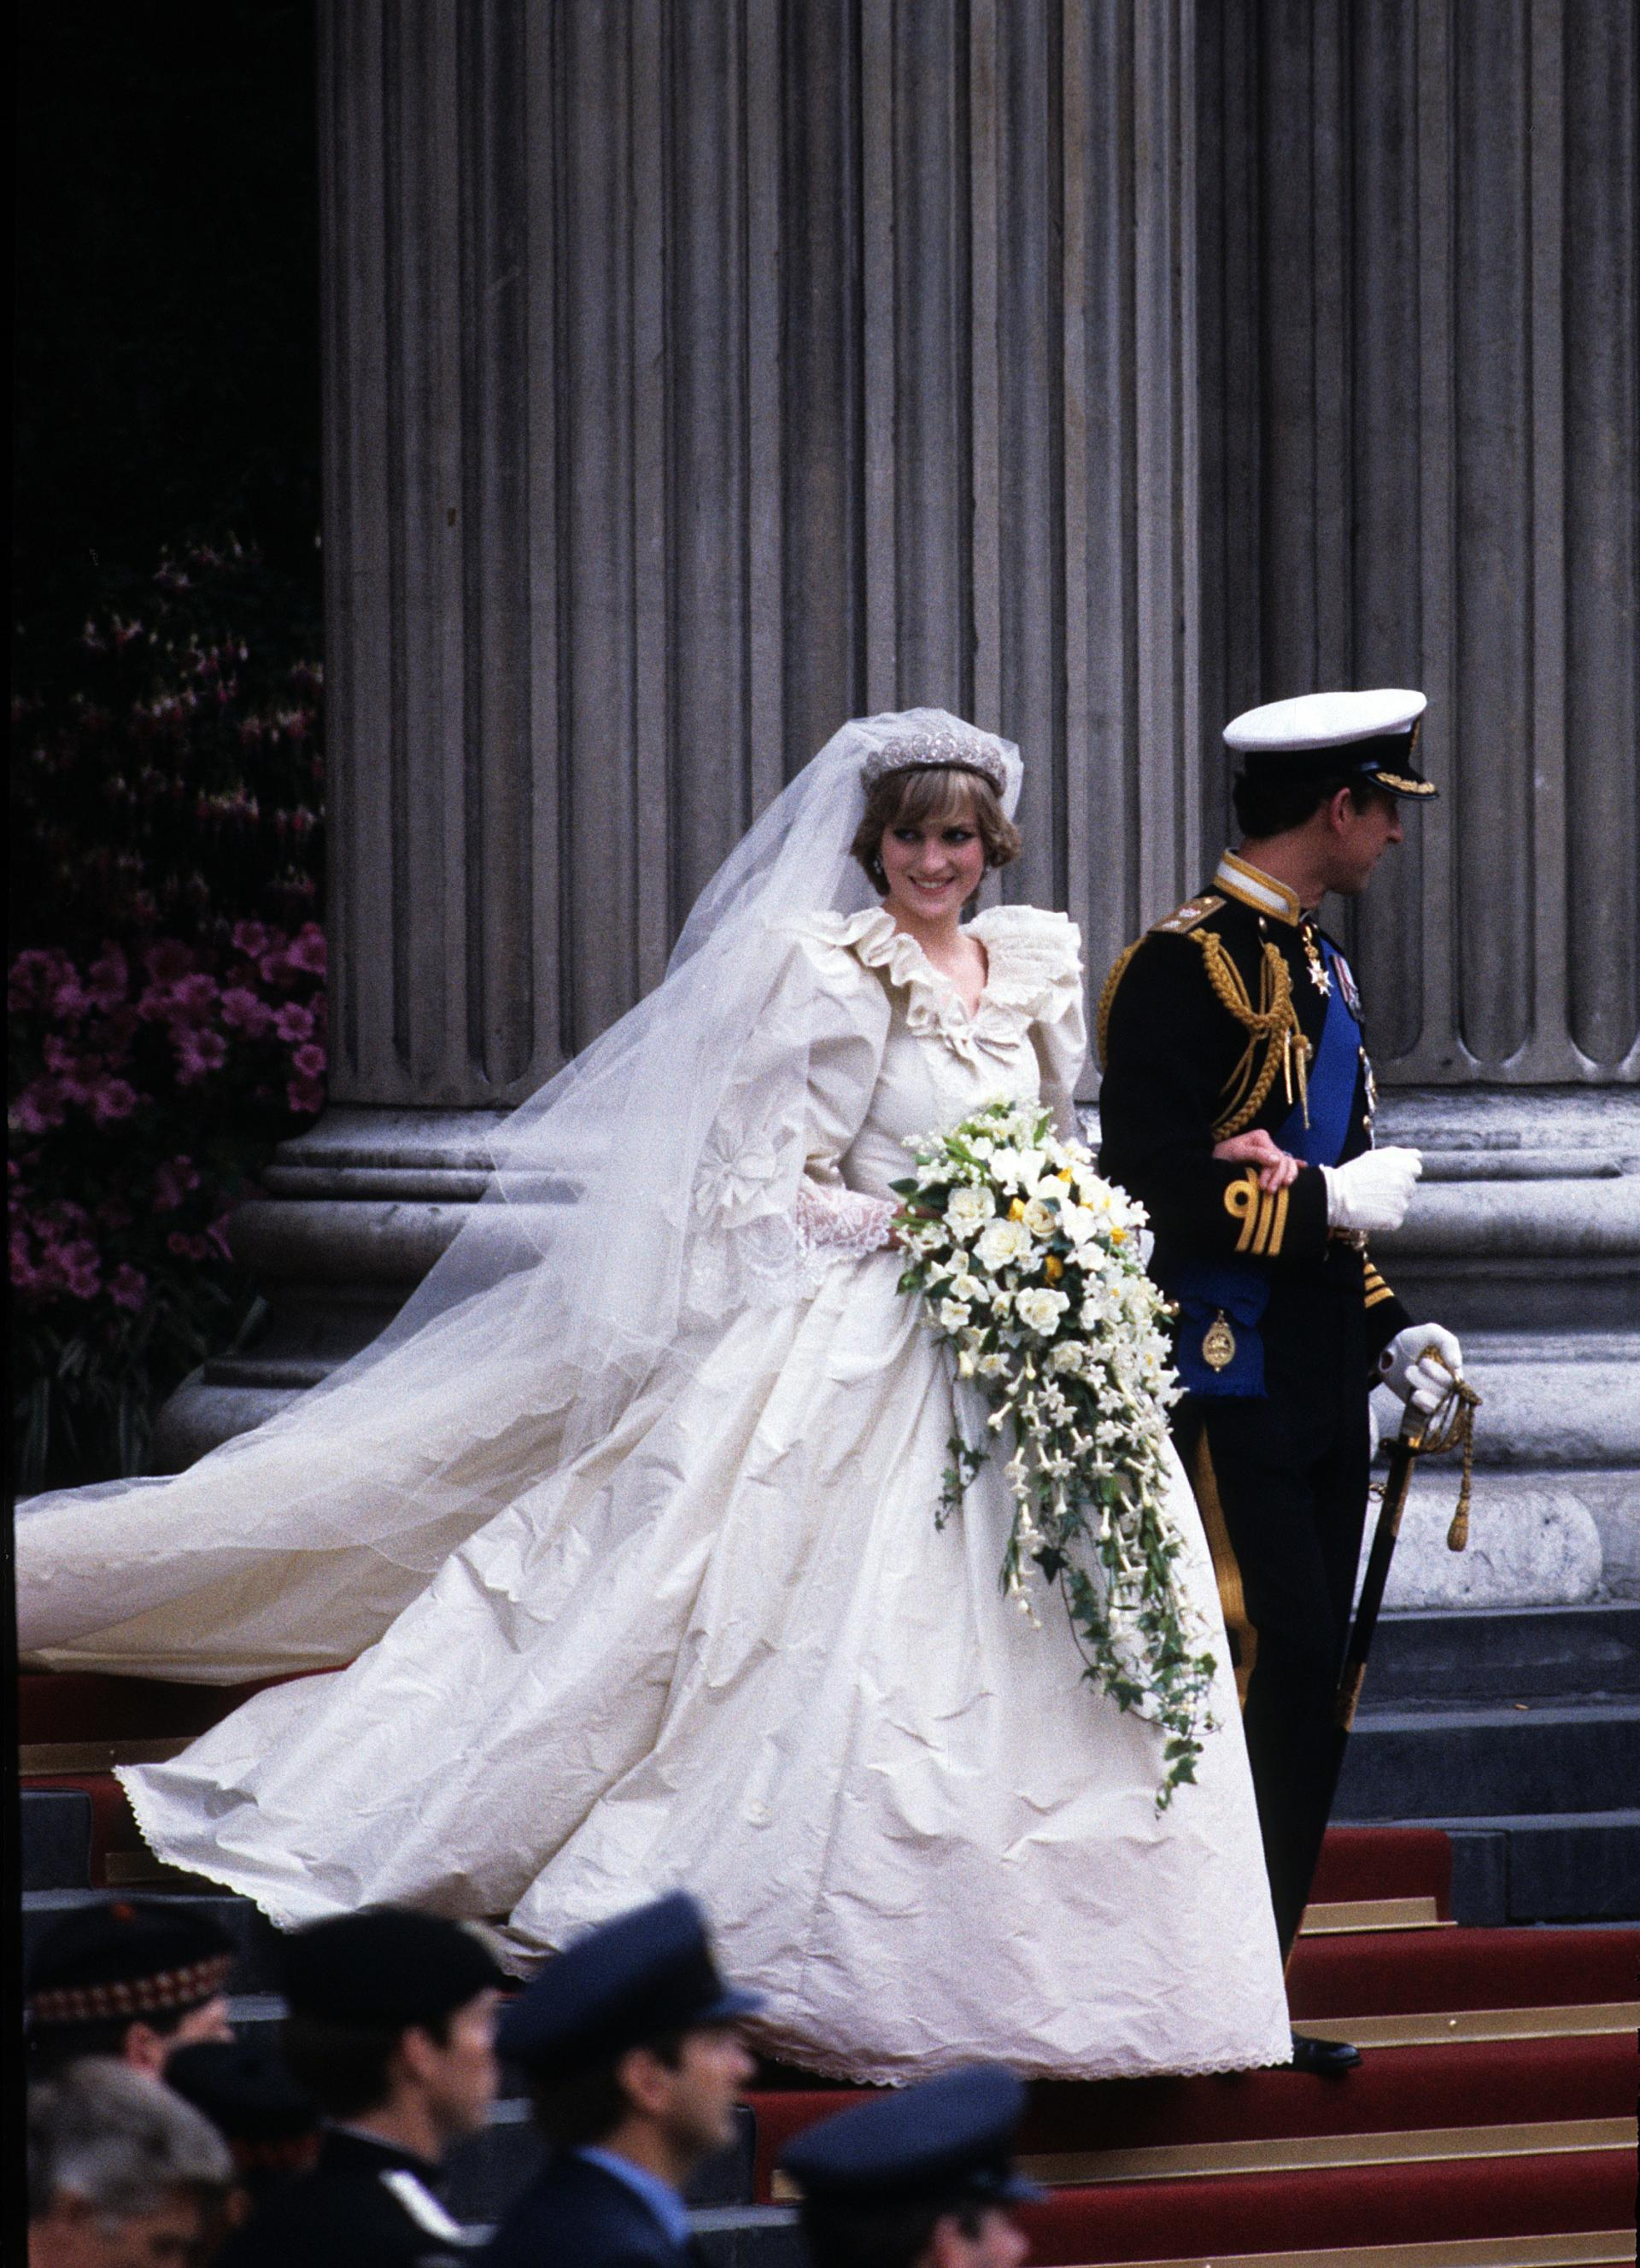 Diana Wedding GettyImages-98672305